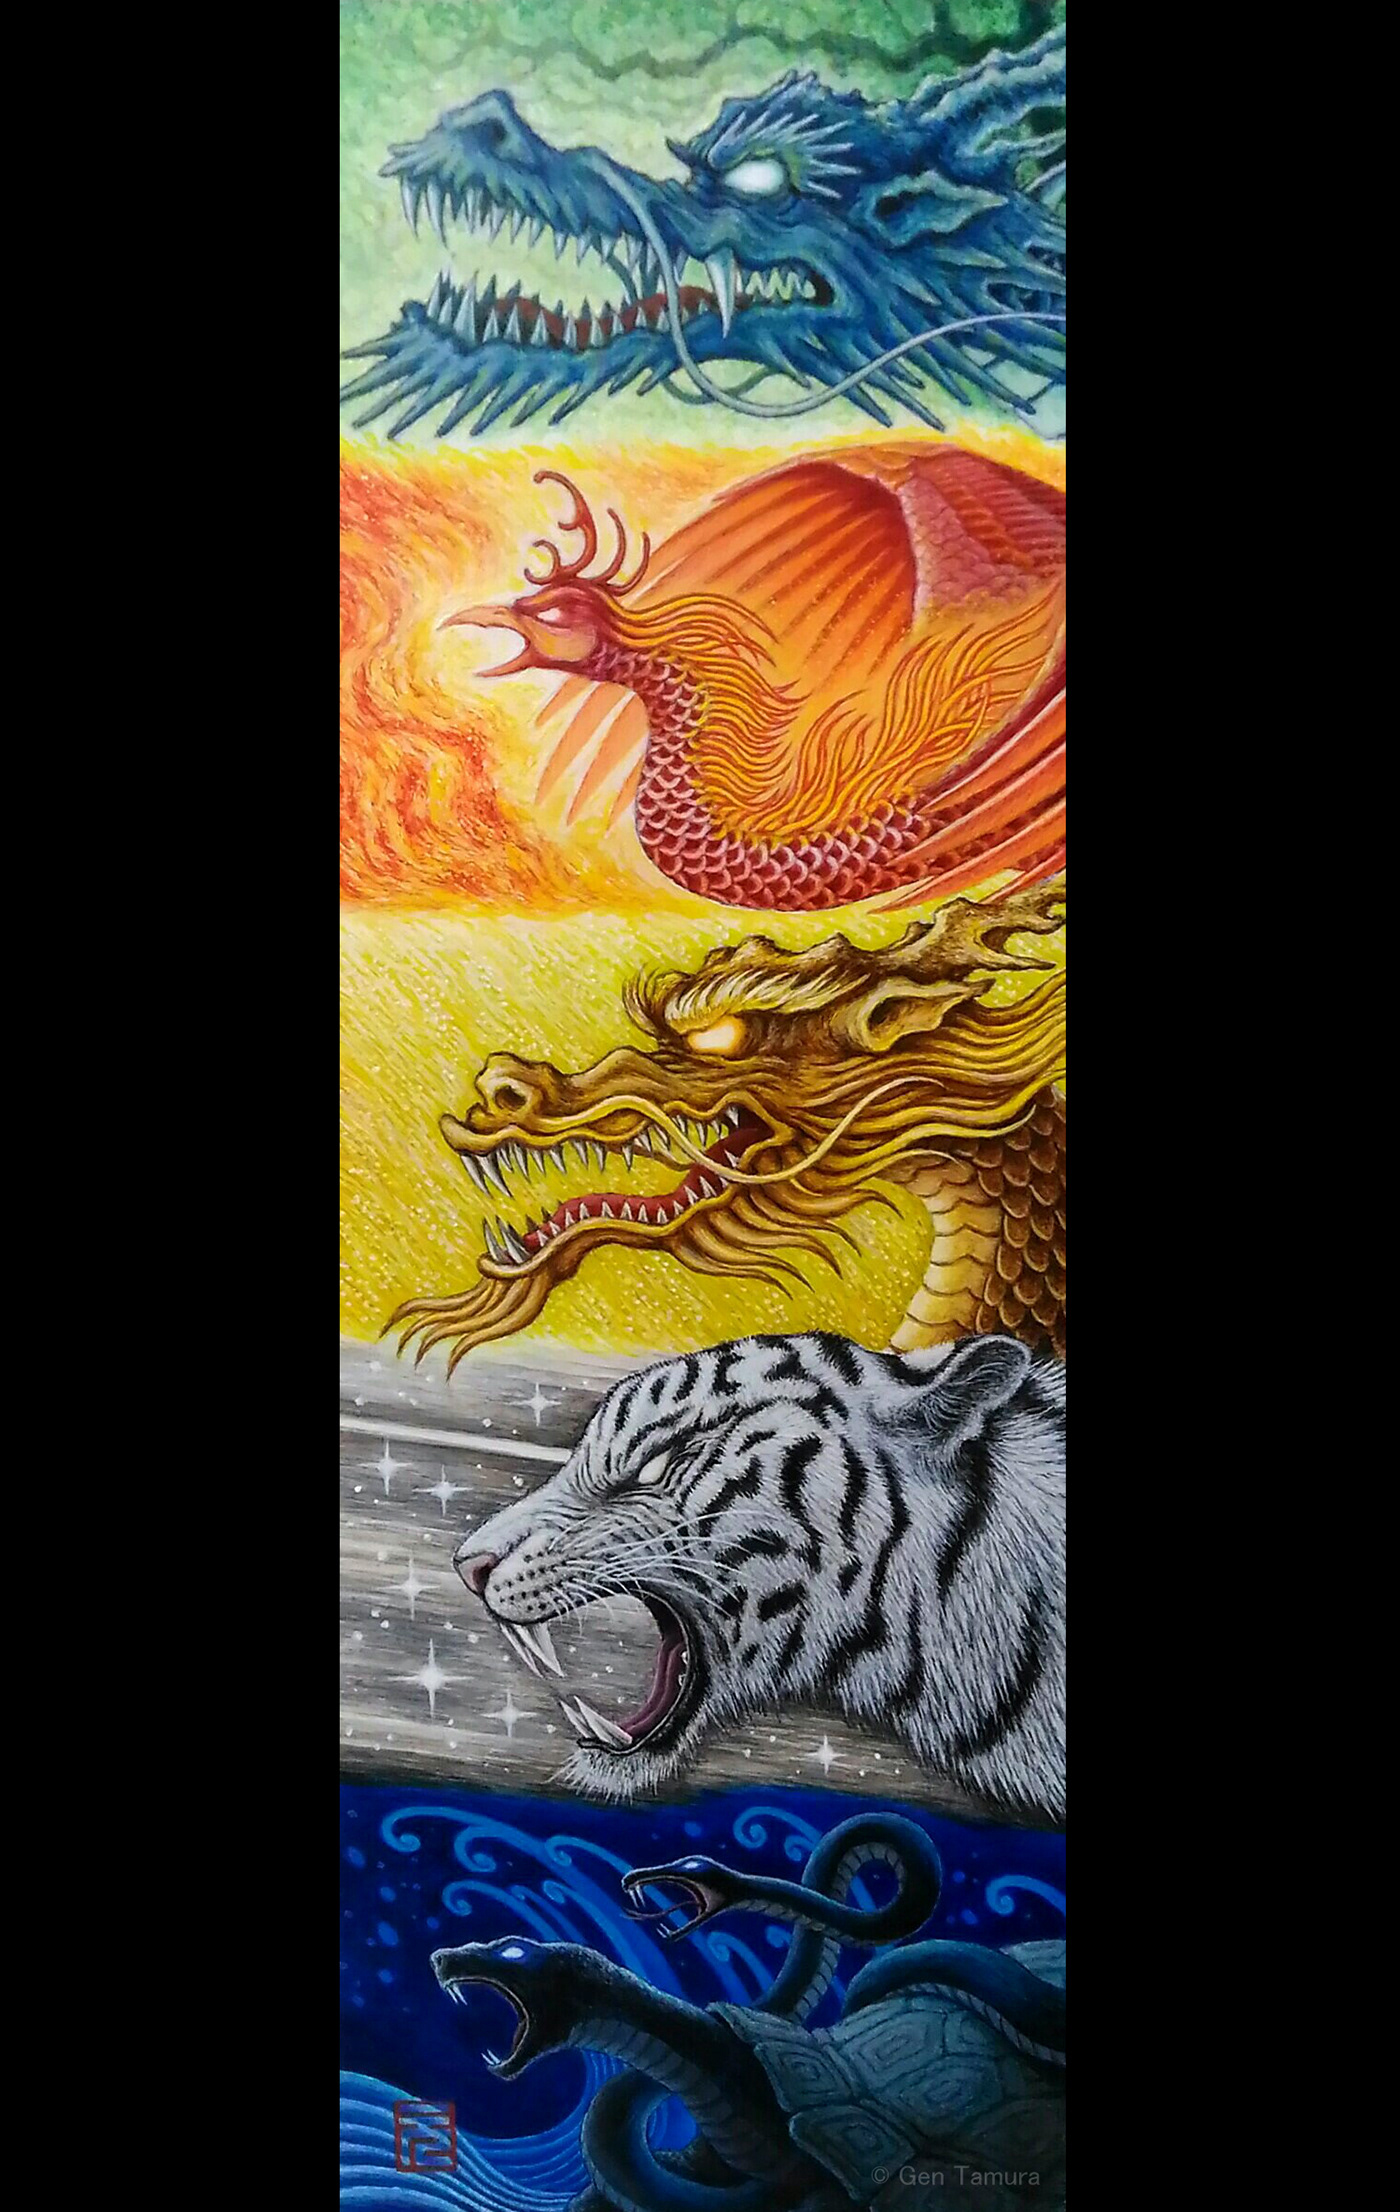 The five mythological creatures link to Wu Xing, also known as the Five Elements.